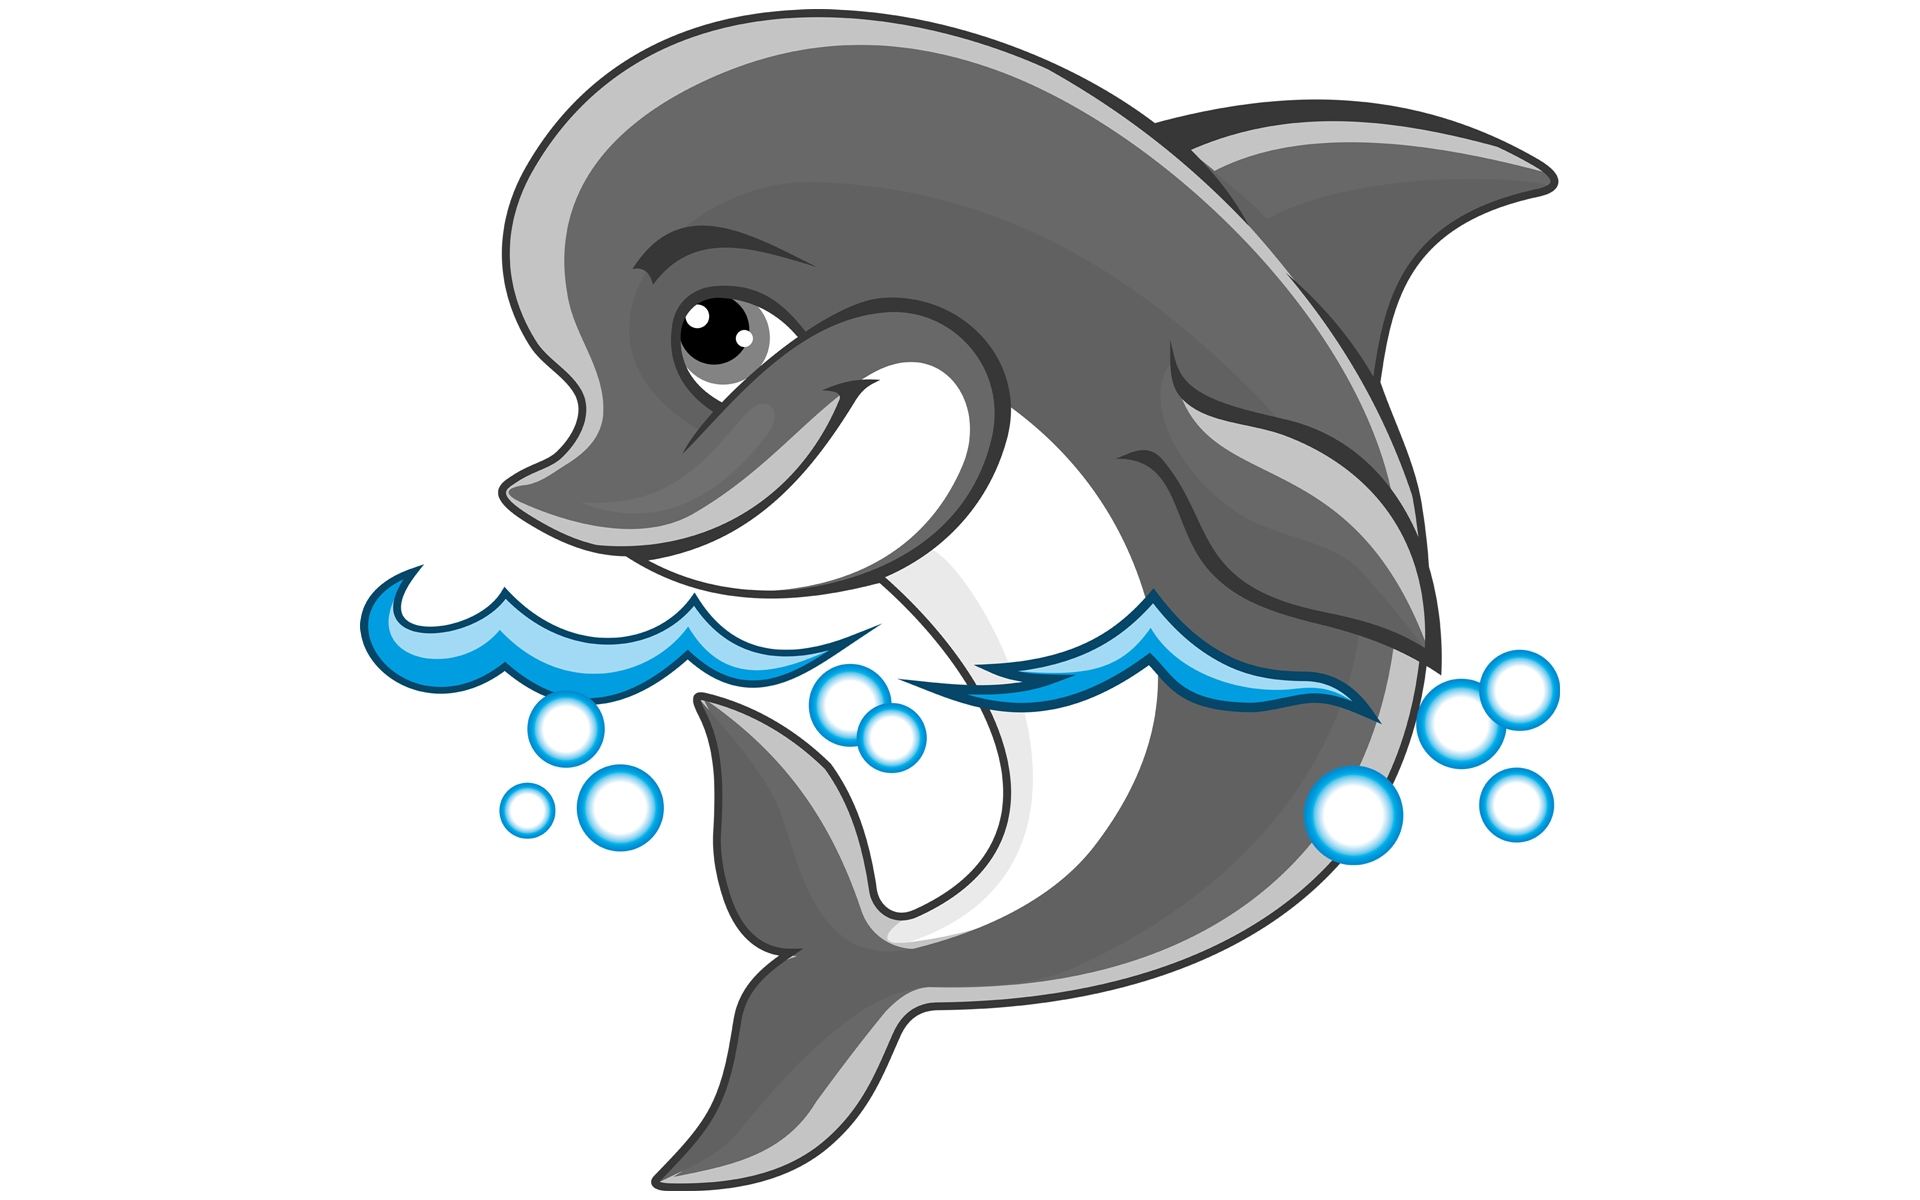 Pictures Of Cartoon Dolphins - ClipArt Best